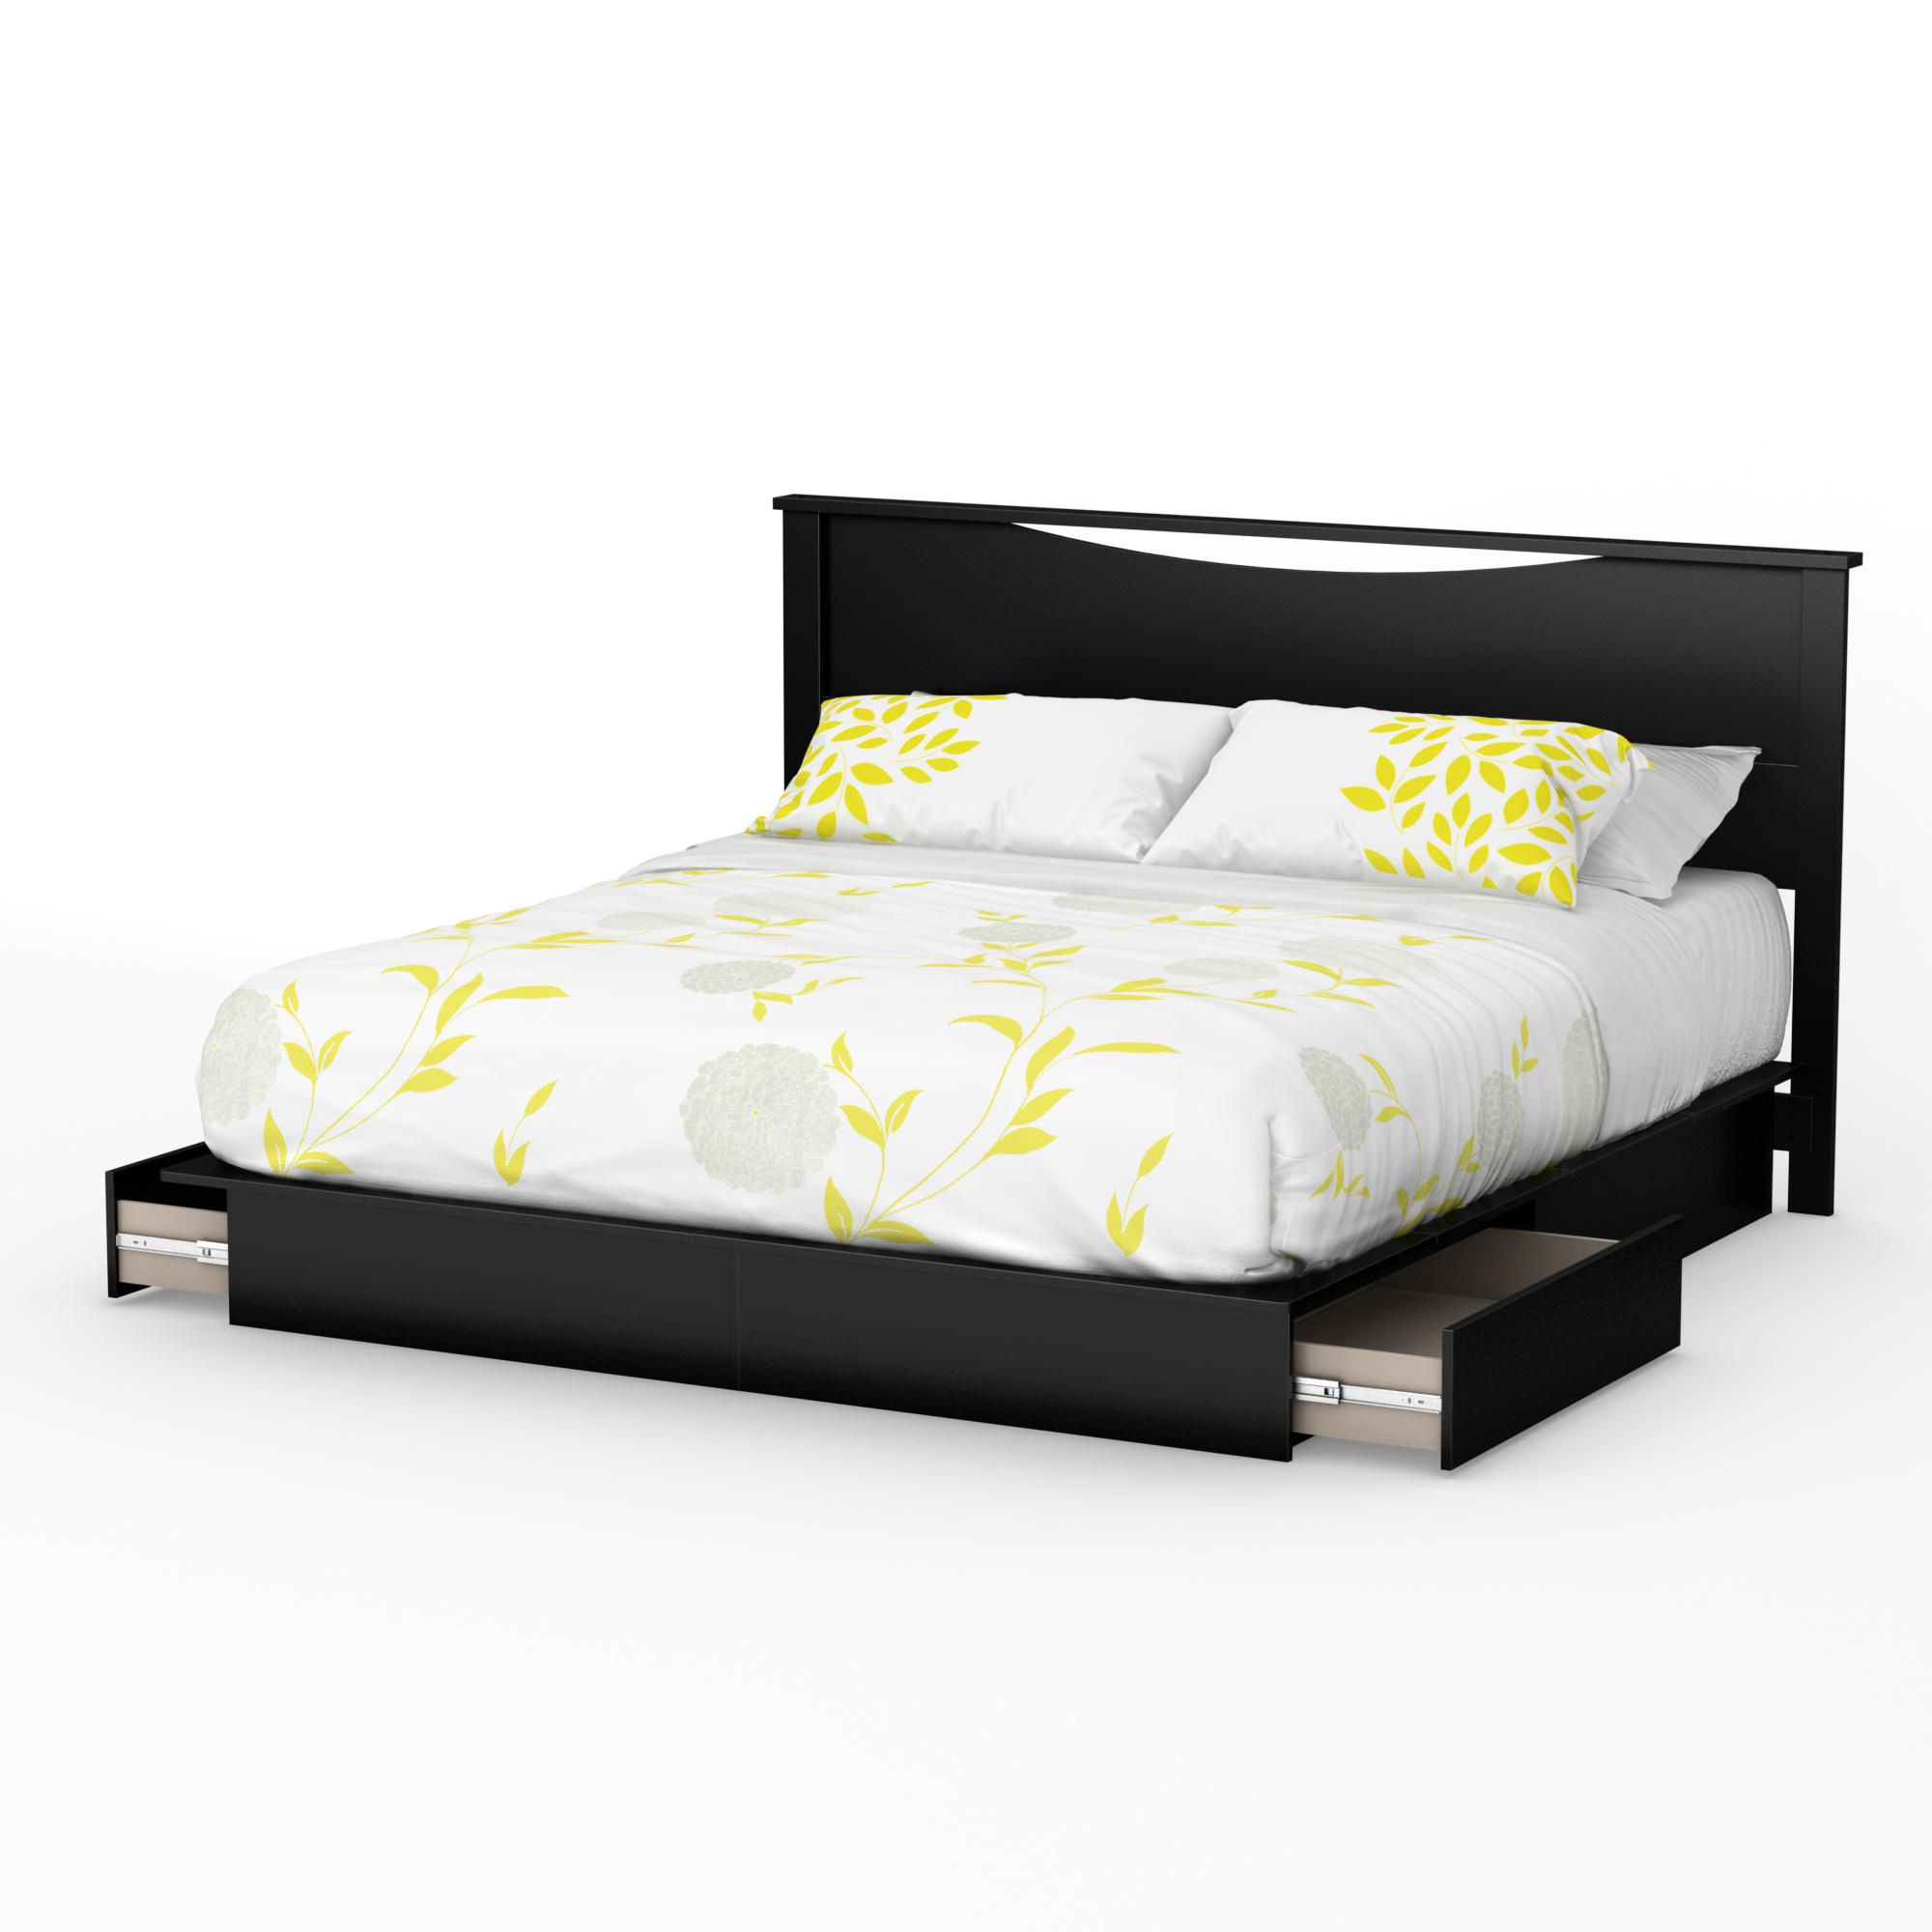 full bed buy led wood headboard frame king mattress theglossyqueen guest view for size fabulous and twin lighting with platform steel sale frames beds floating without in of queen minimalist